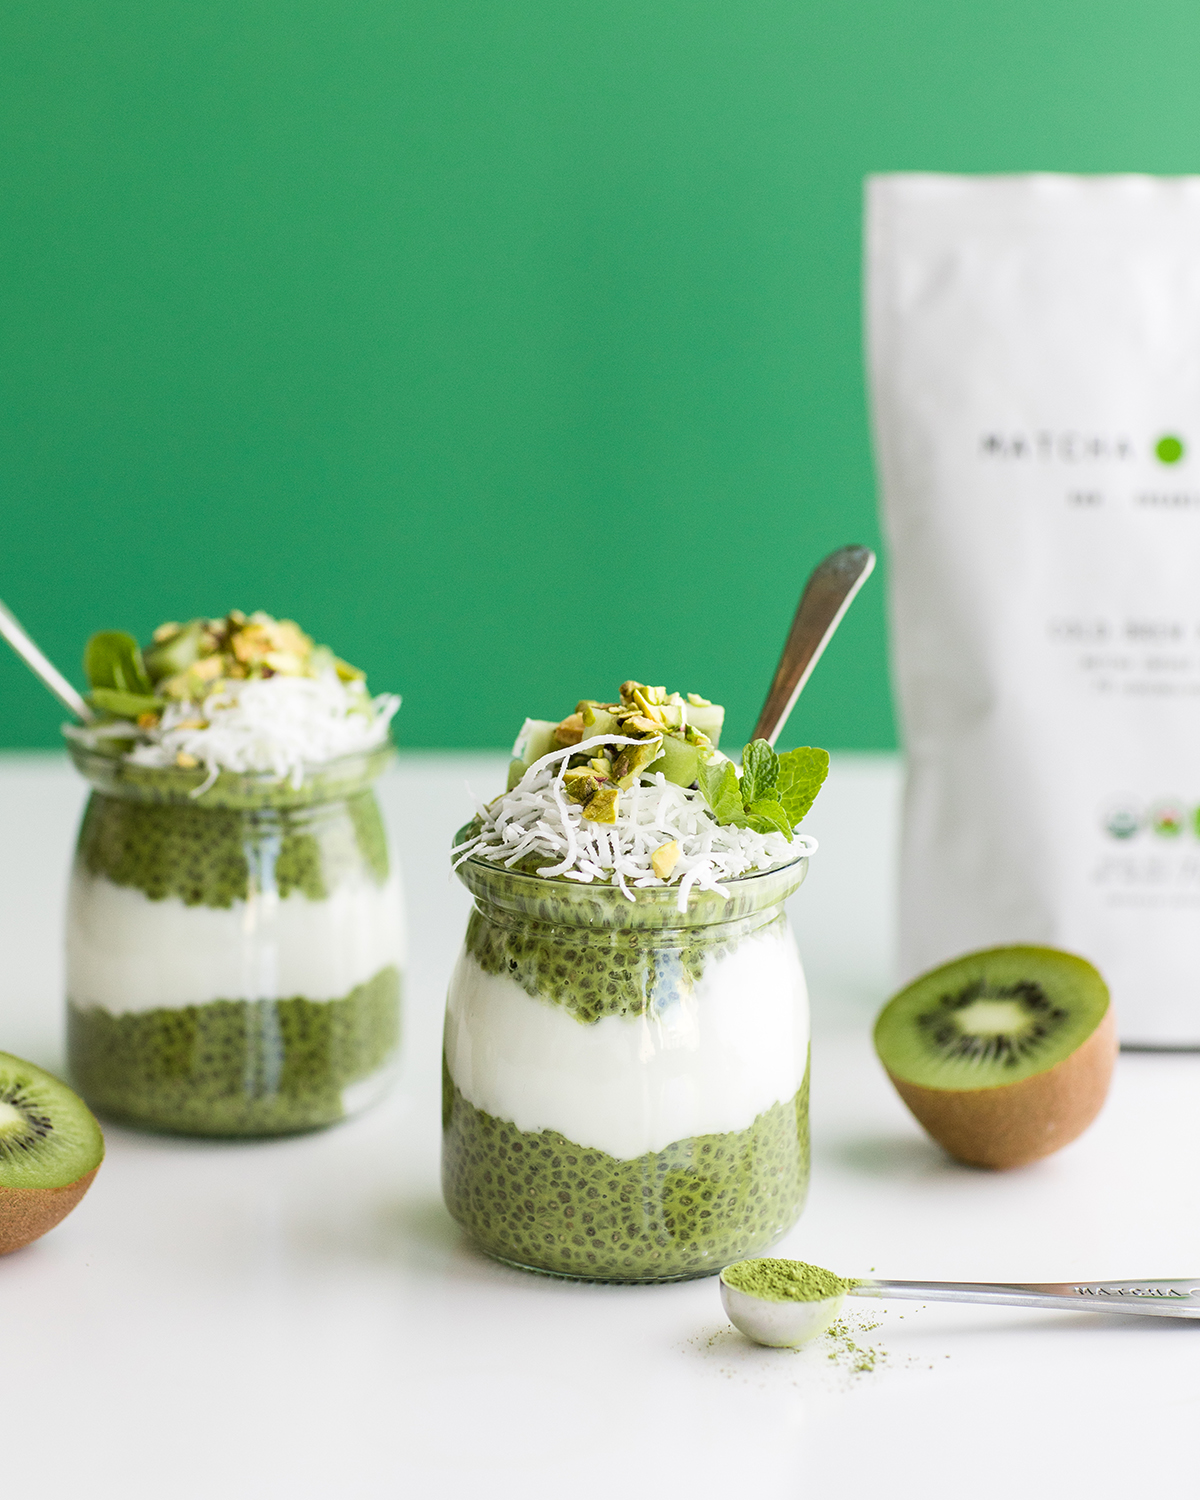 - Ingredients:1 cup almond milk2.5 tbs chia seeds1-2 tsp Matcha1 tsp vanilla--Mix and set in fridge for 1-2 hours or overnight!